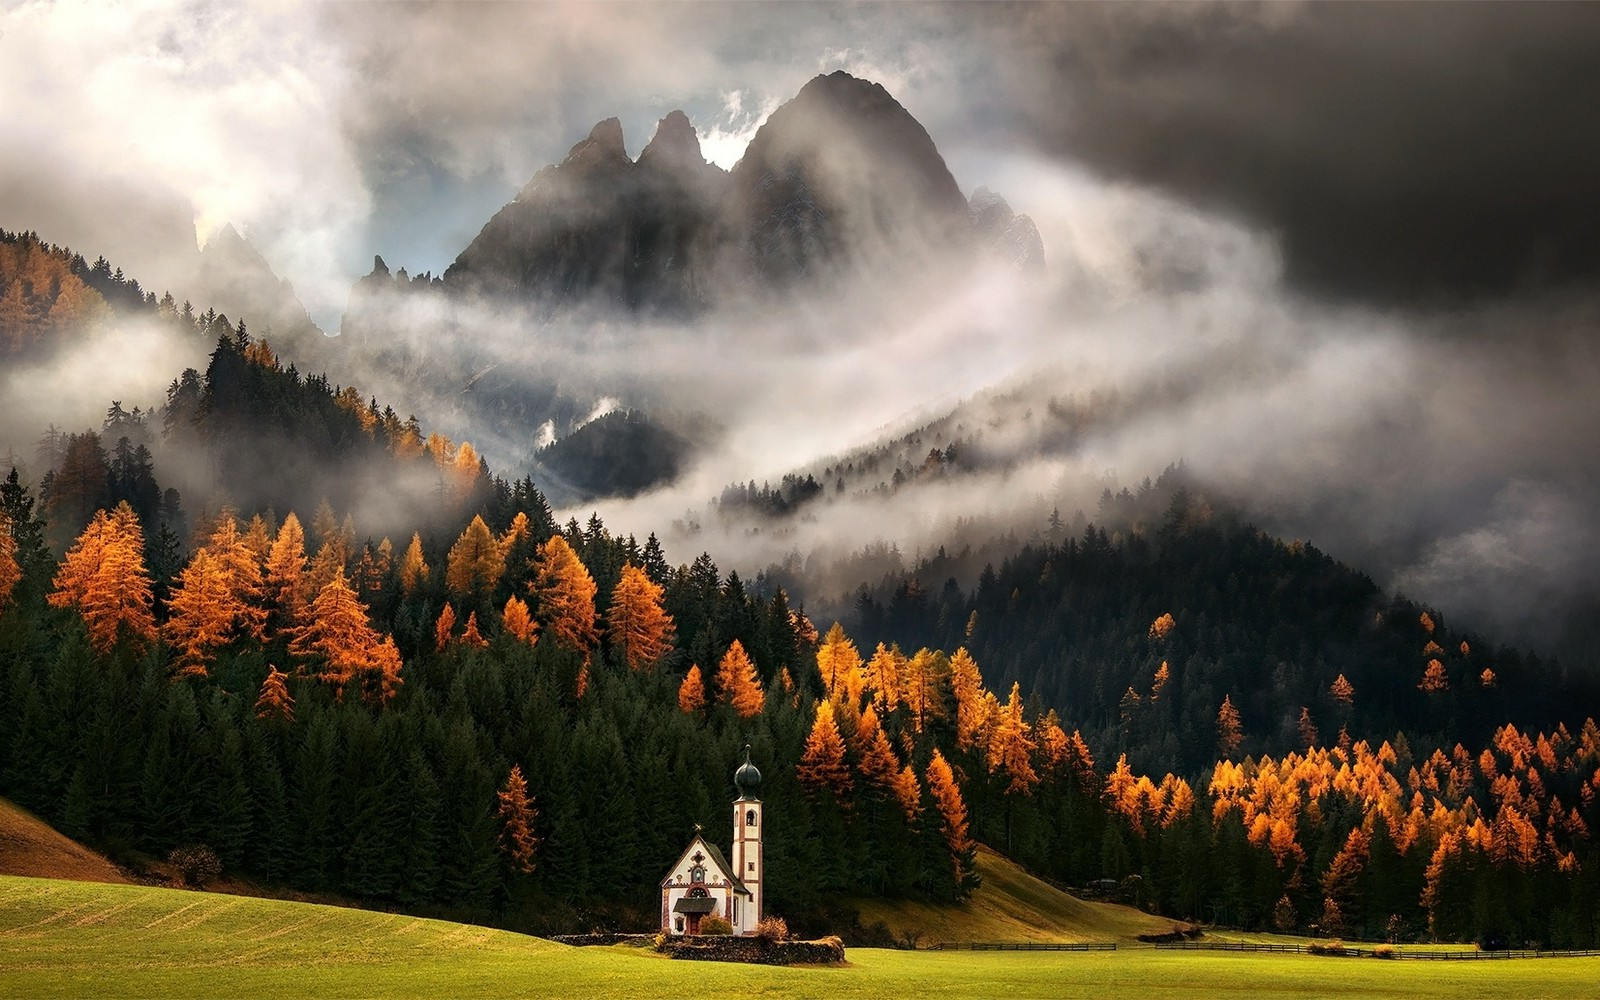 1280x1024 Fall Wallpaper Nature Mist Landscape Italy Alps Church Clouds